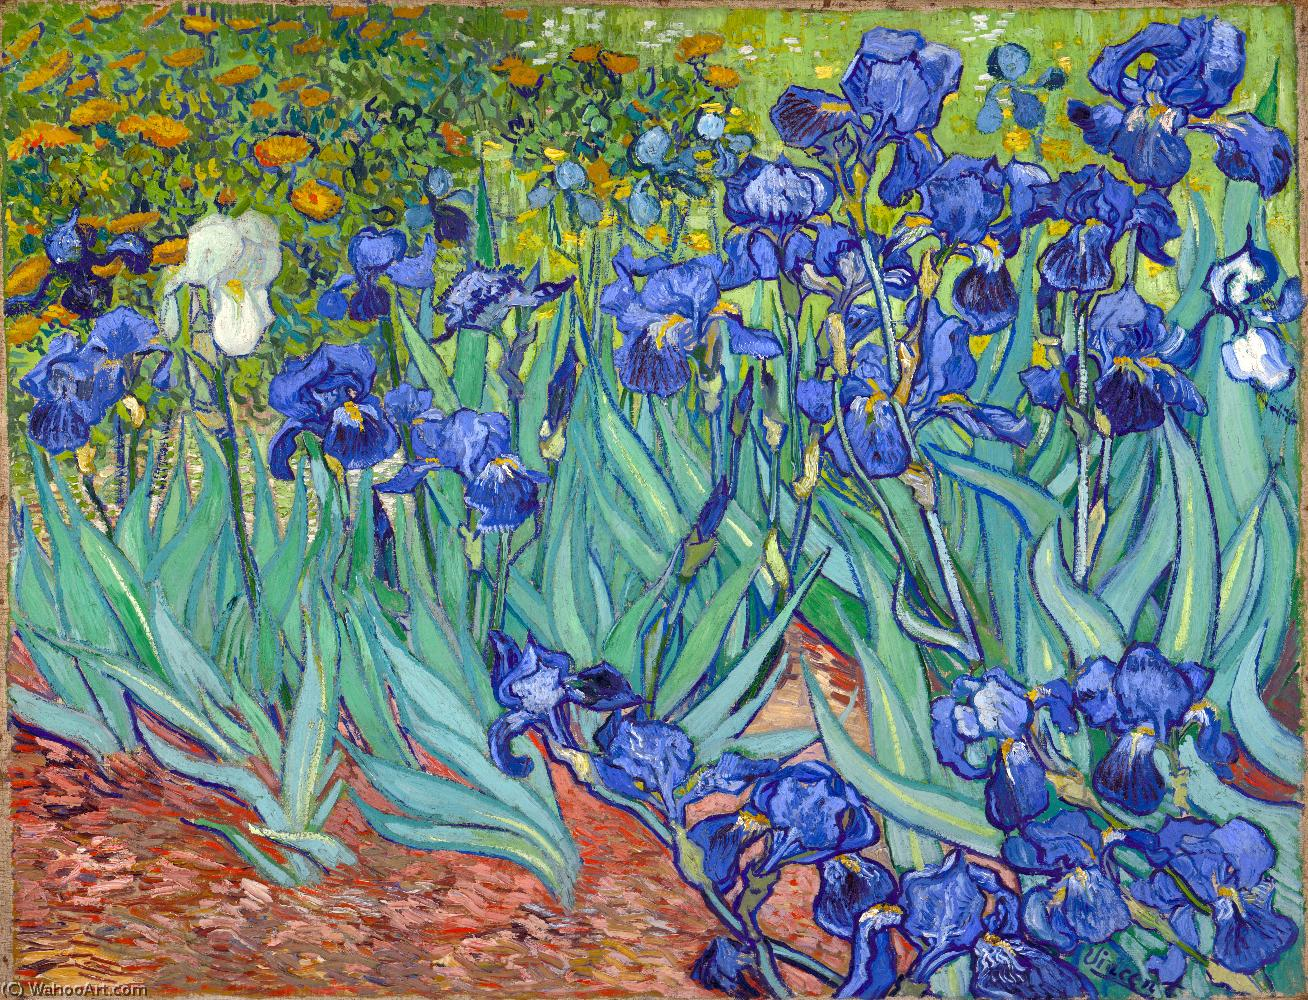 Wikioo.org - The Encyclopedia of Fine Arts - Painting, Artwork by Vincent Van Gogh - Irises